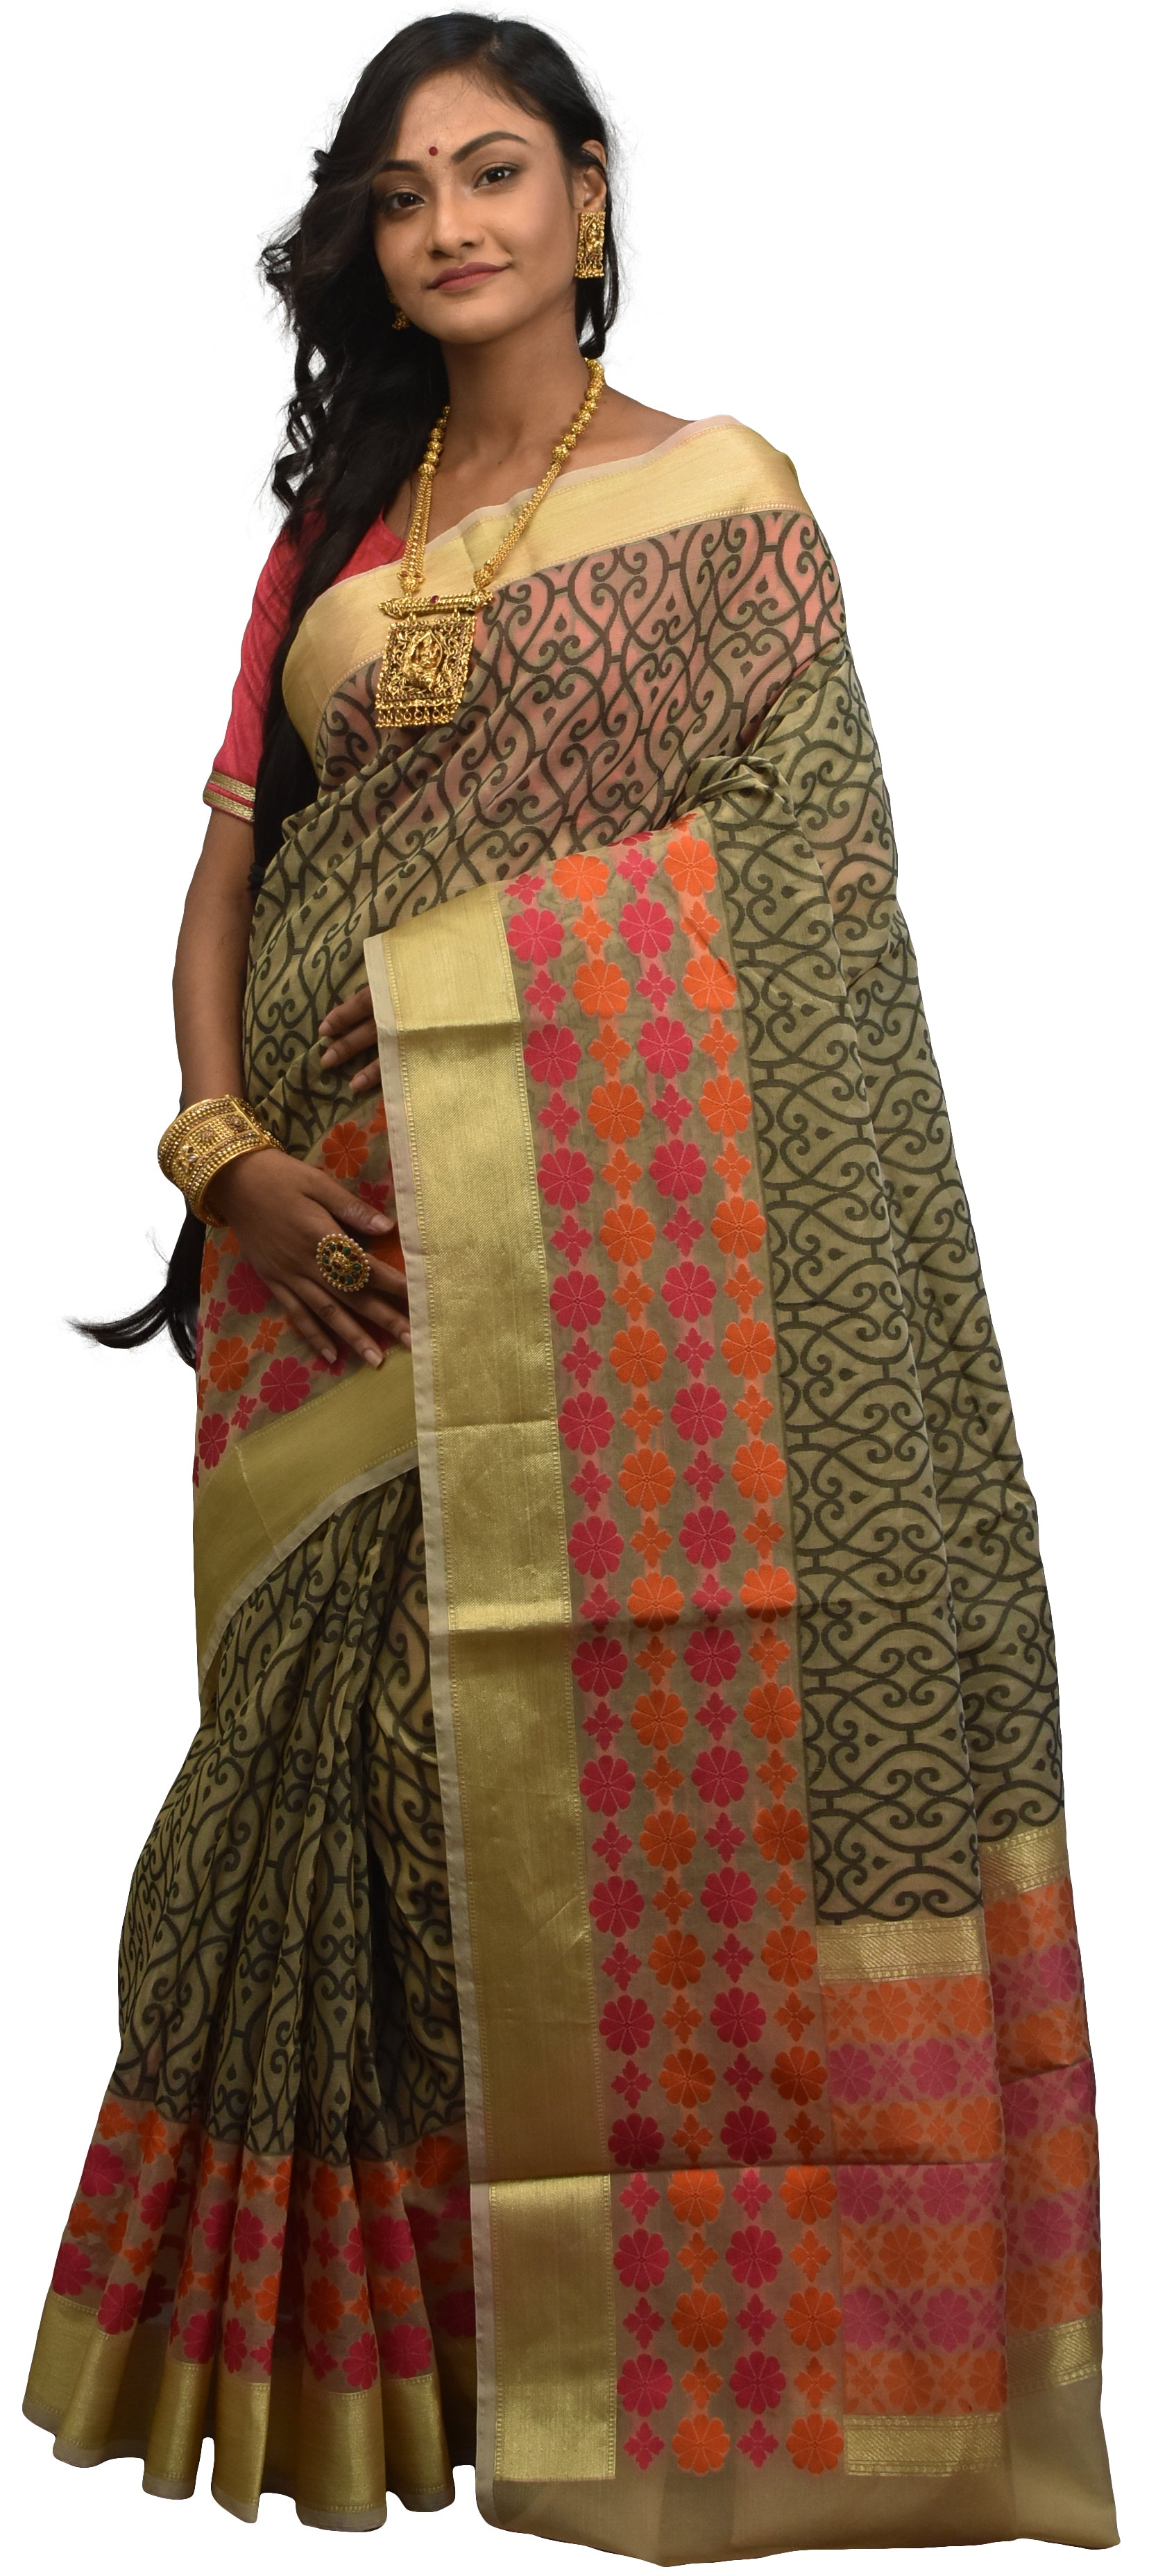 Beige & Black Traditional Designer Wedding Hand Weaven Pure Benarasi Zari Work Saree Sari With Blouse BH10C